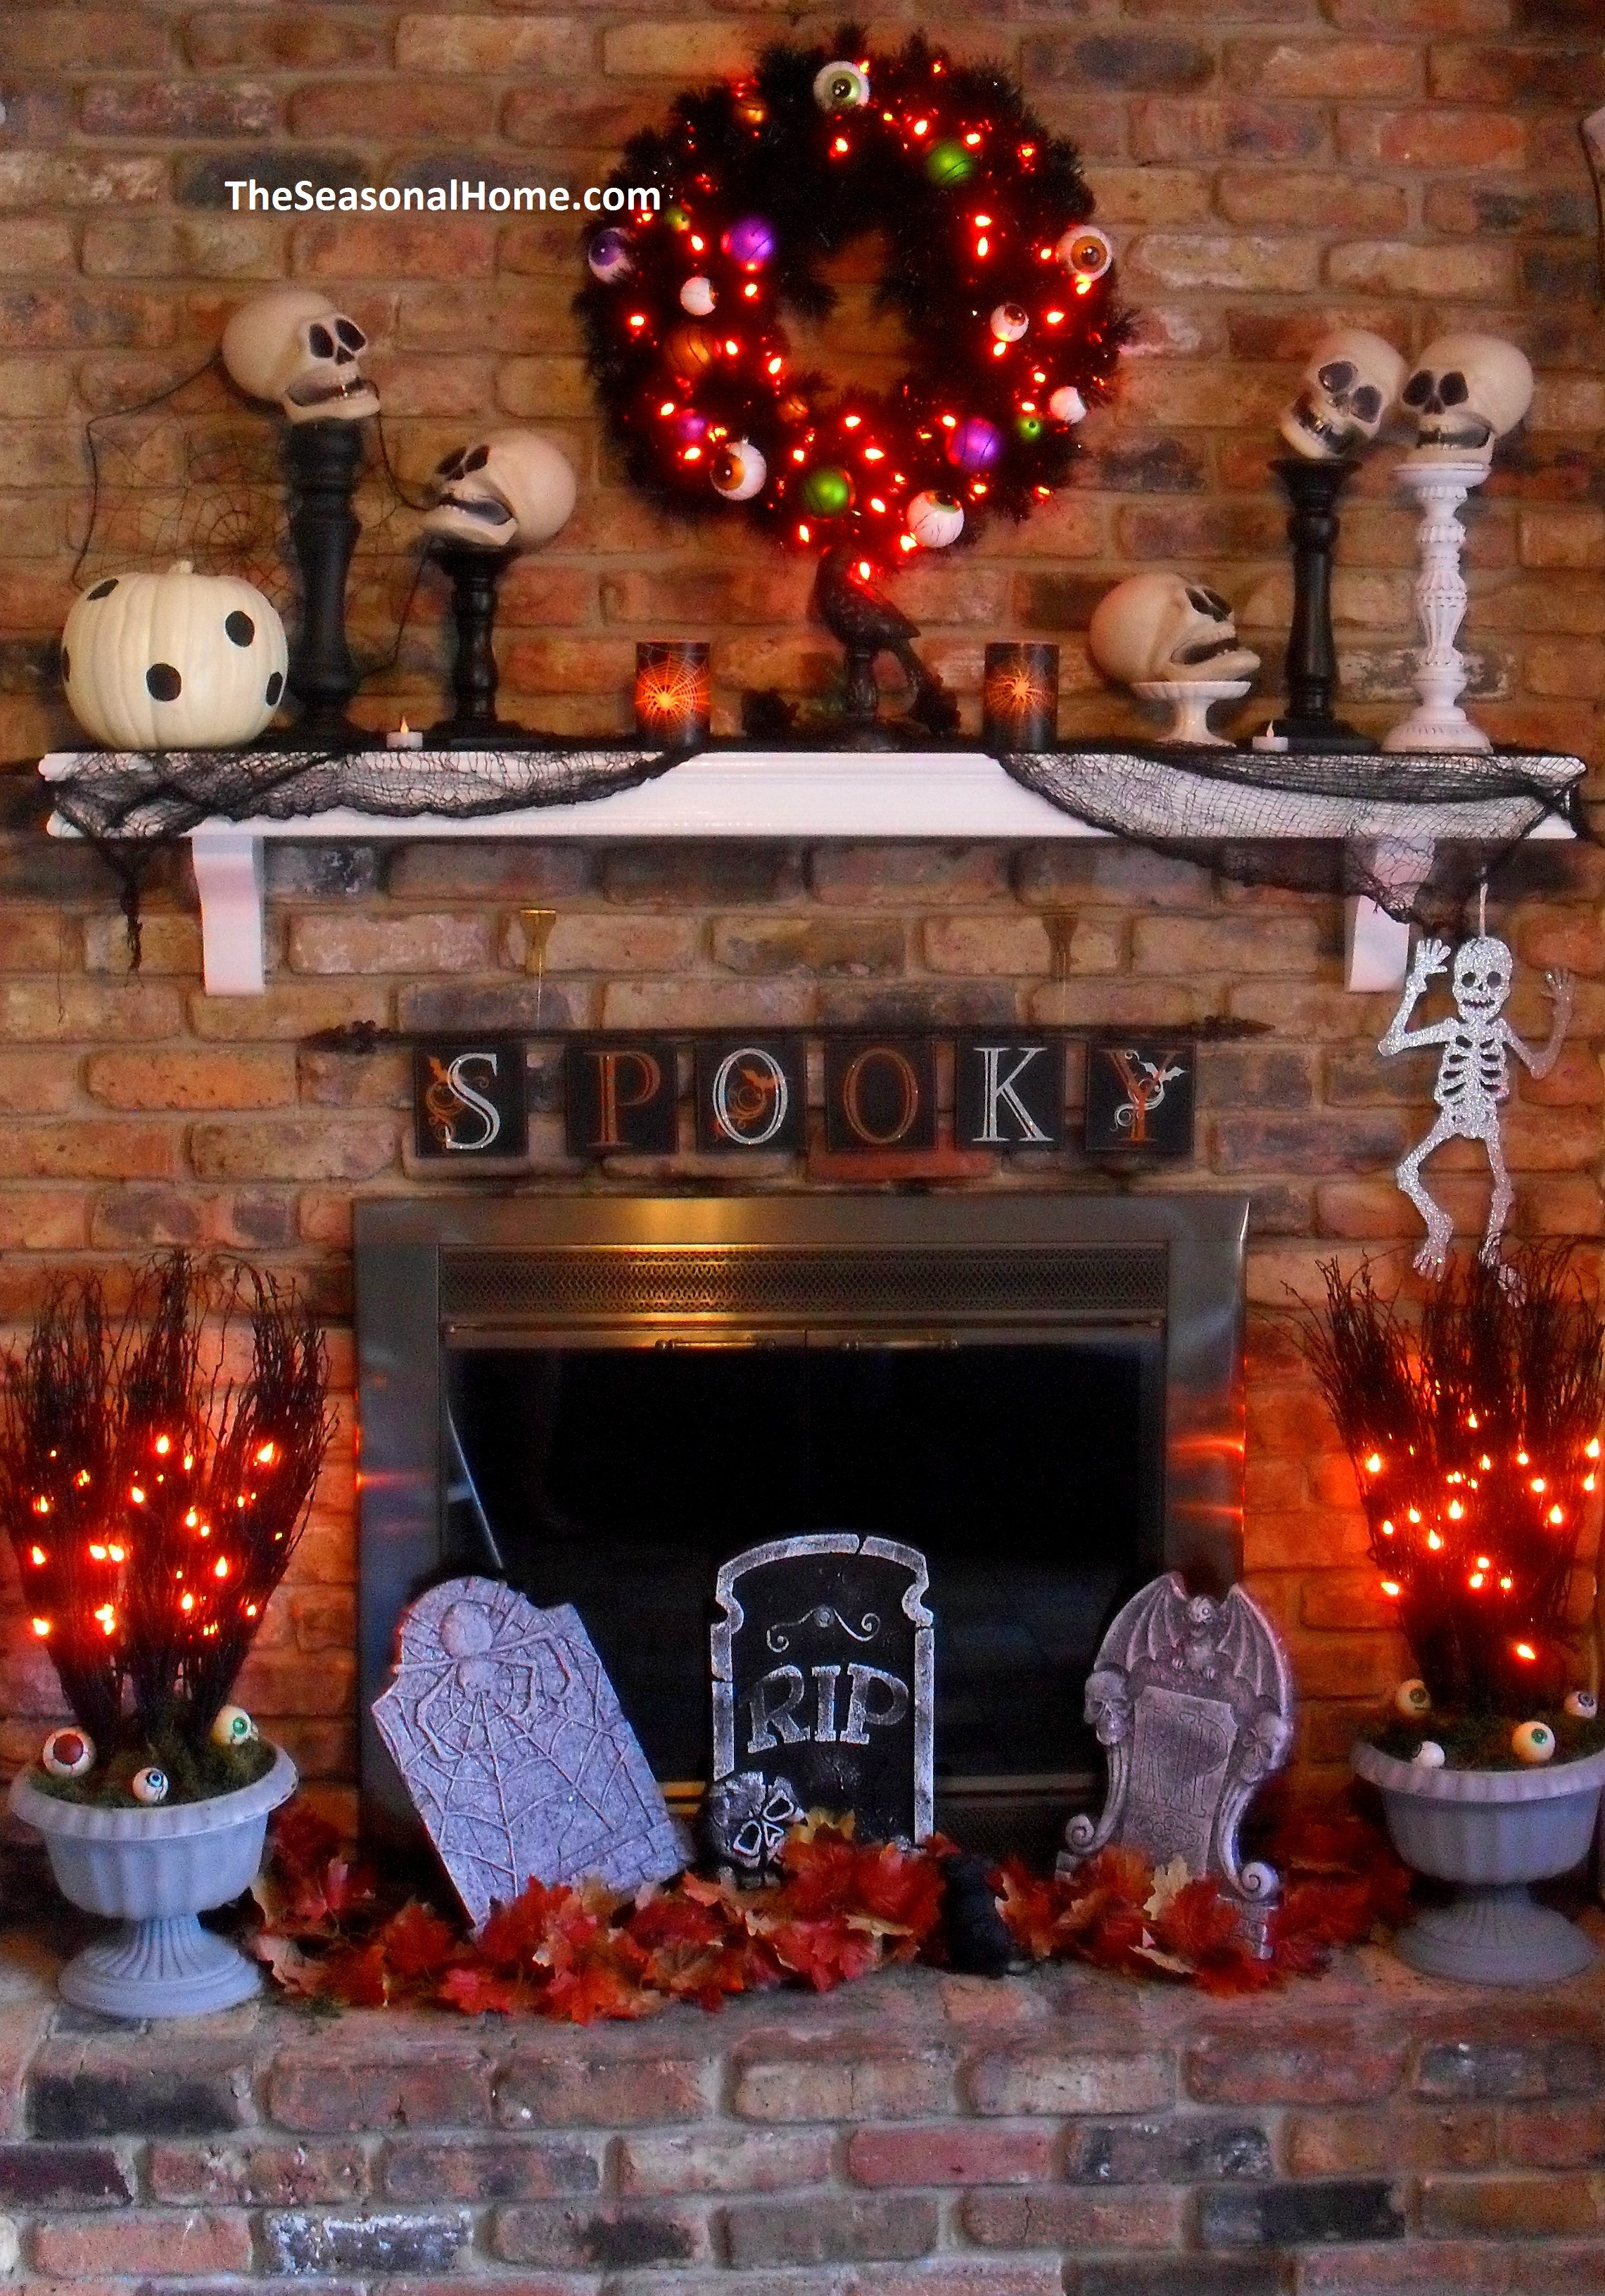 Halloween Fireplace Decorations  A Thrifty Decorating Theme for Halloween The Seasonal Home